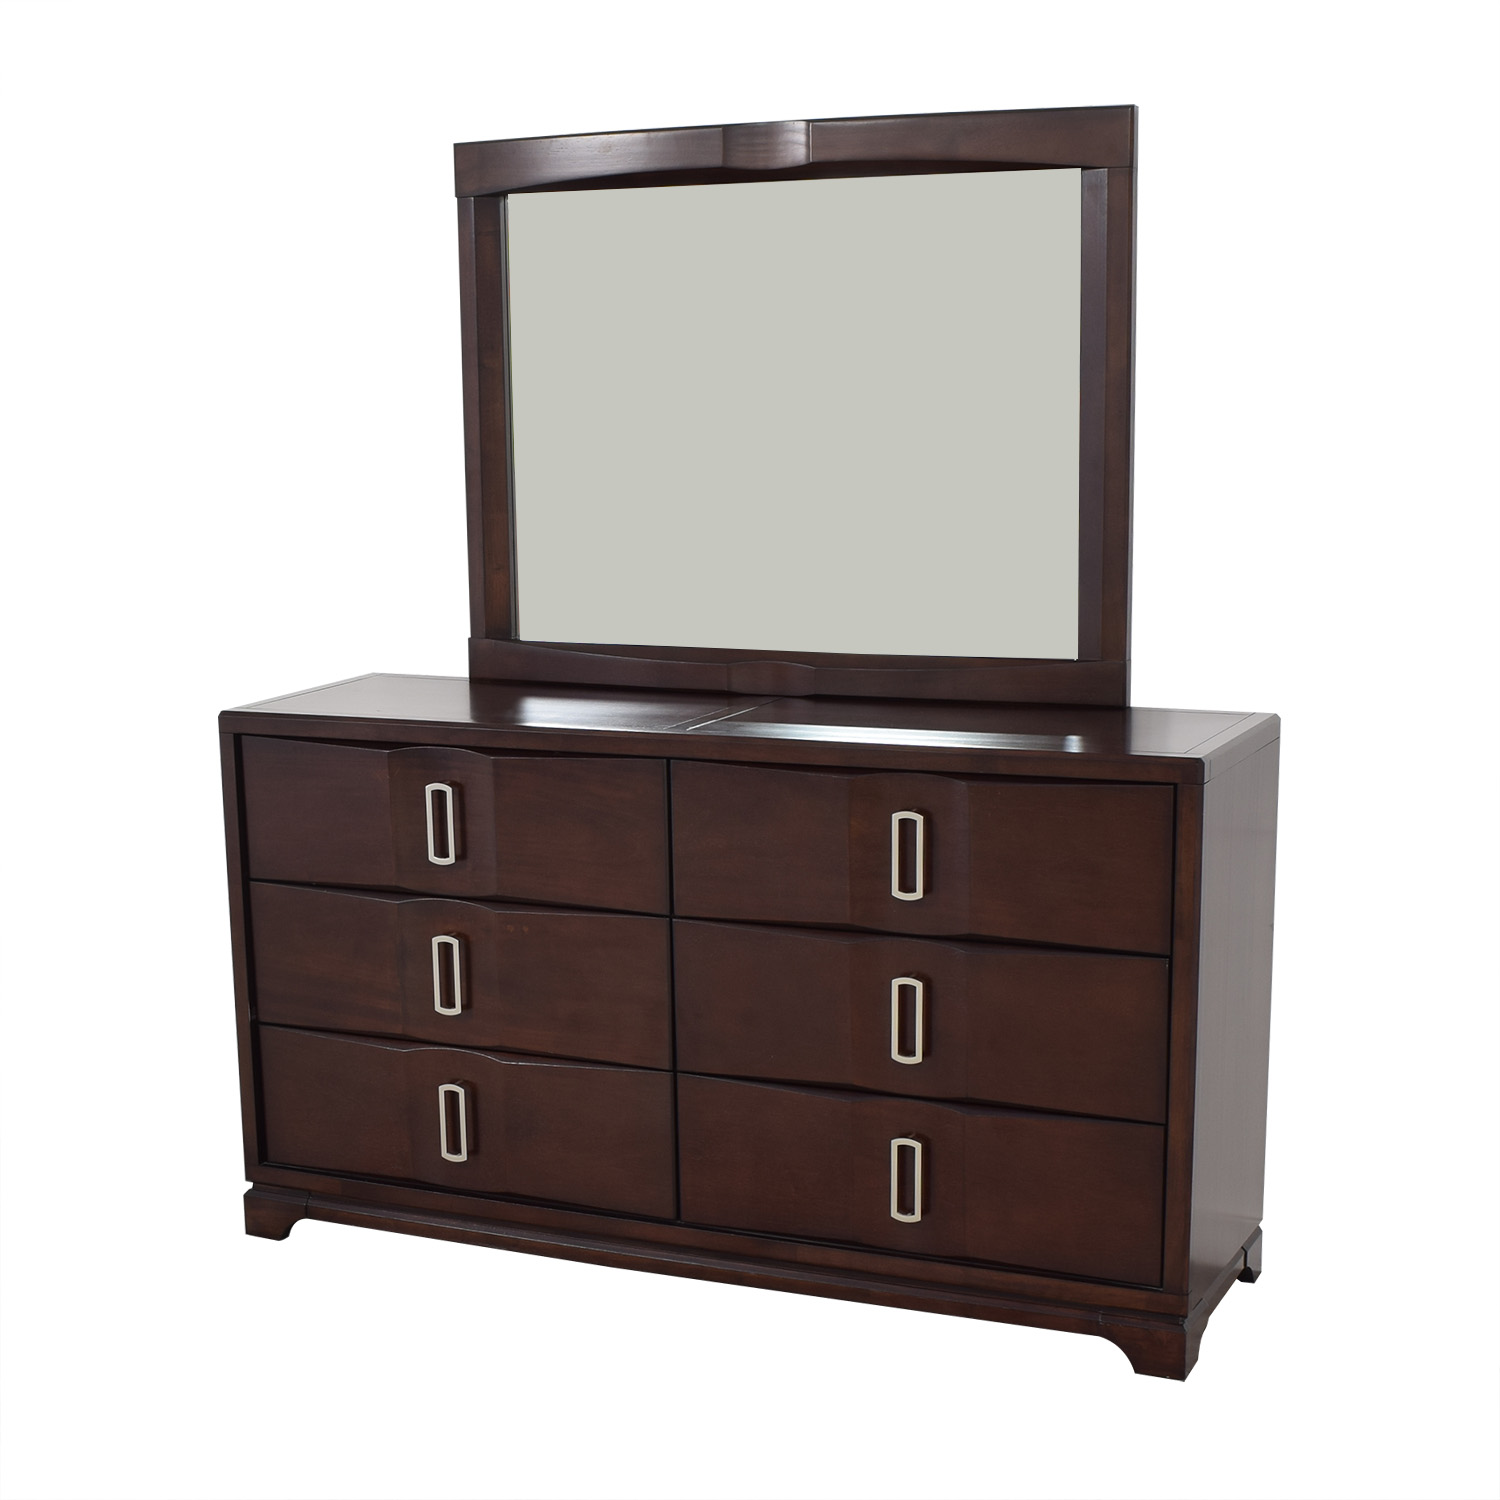 buy Casana Furniture Dresser with Mirror Casana Furniture